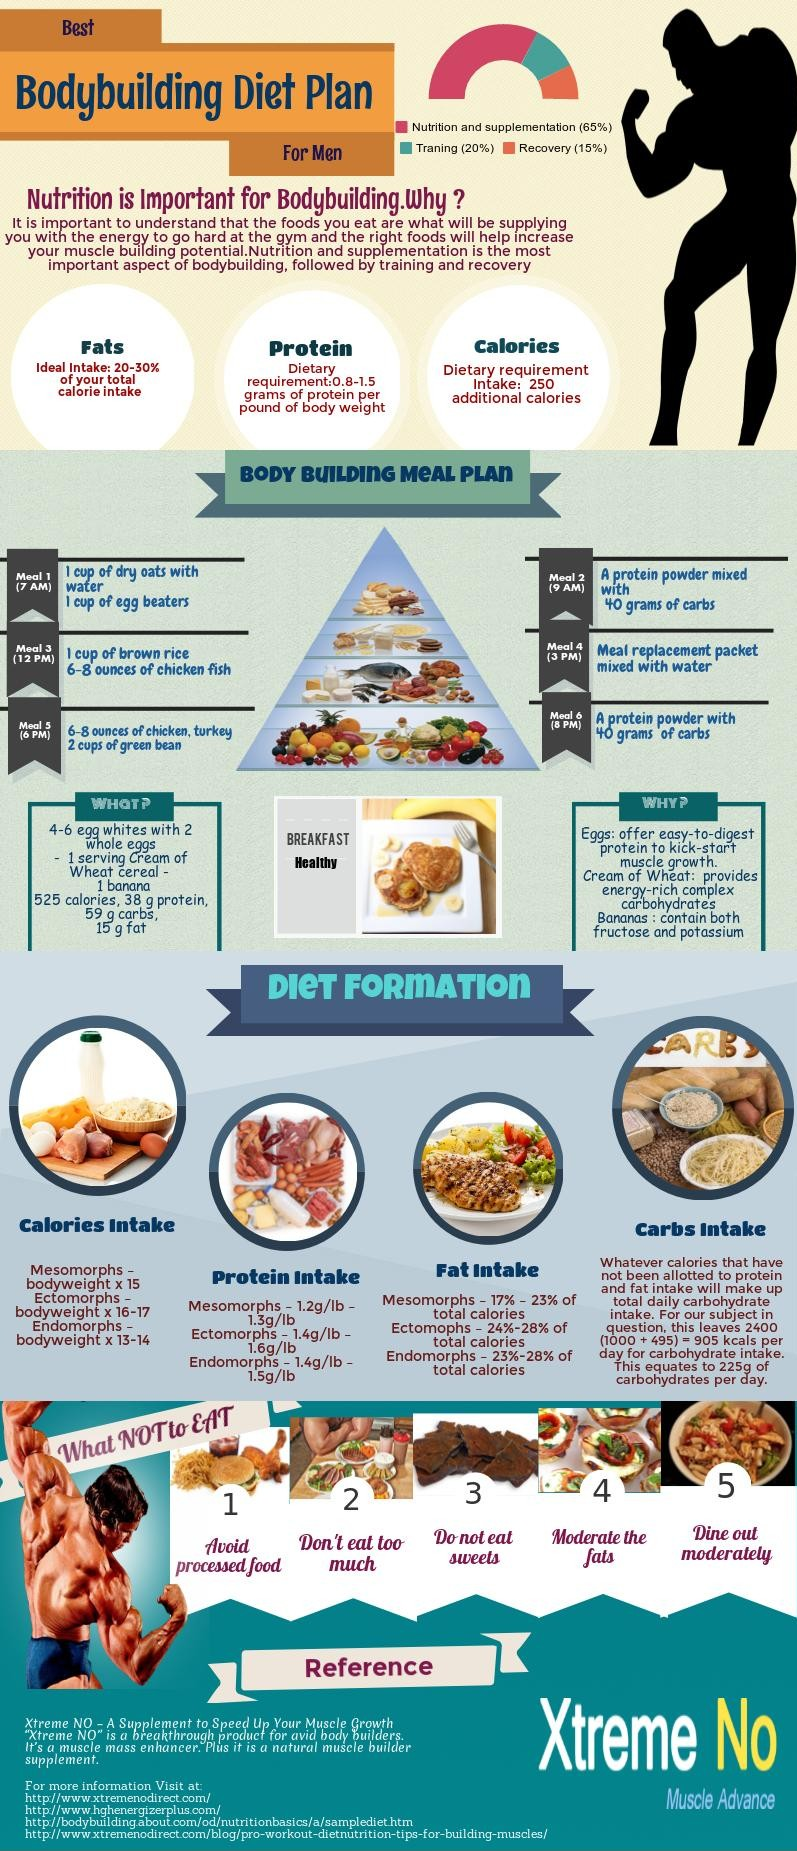 What Bodybuilding Diet Plan Every Guy Should Follow